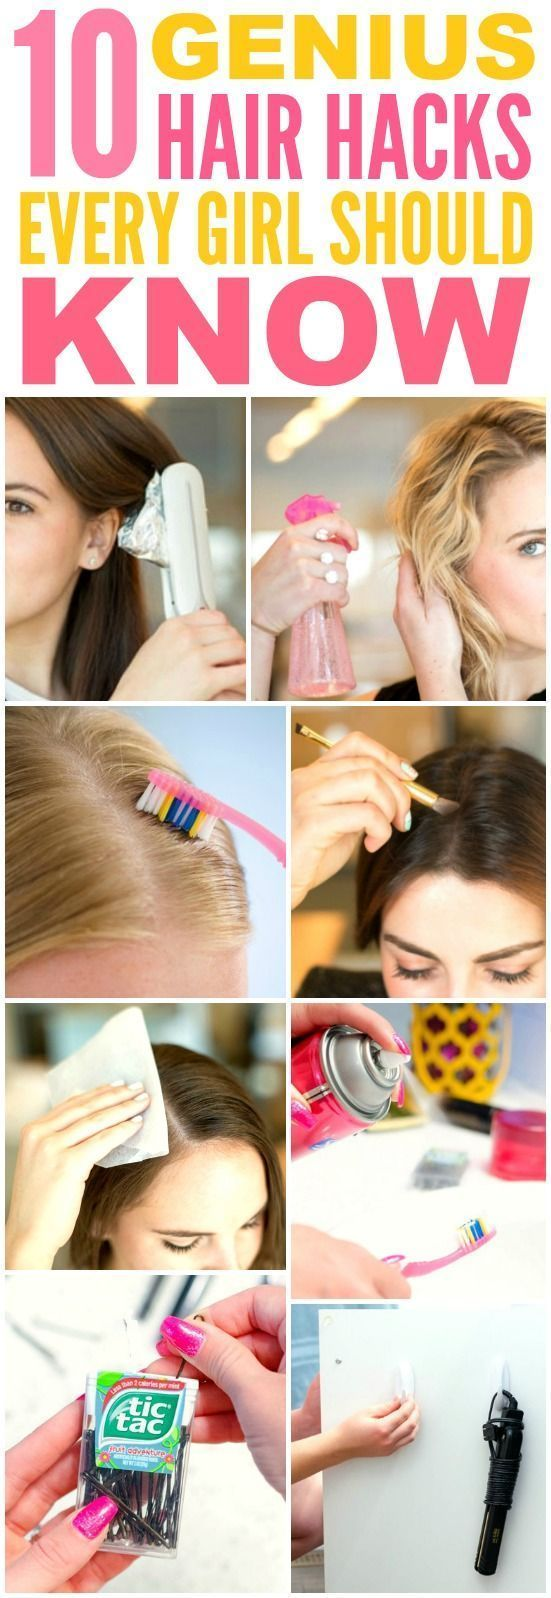 These 10 genius hair hacks every girl should know are THE BEST! I'm so glad I fo...